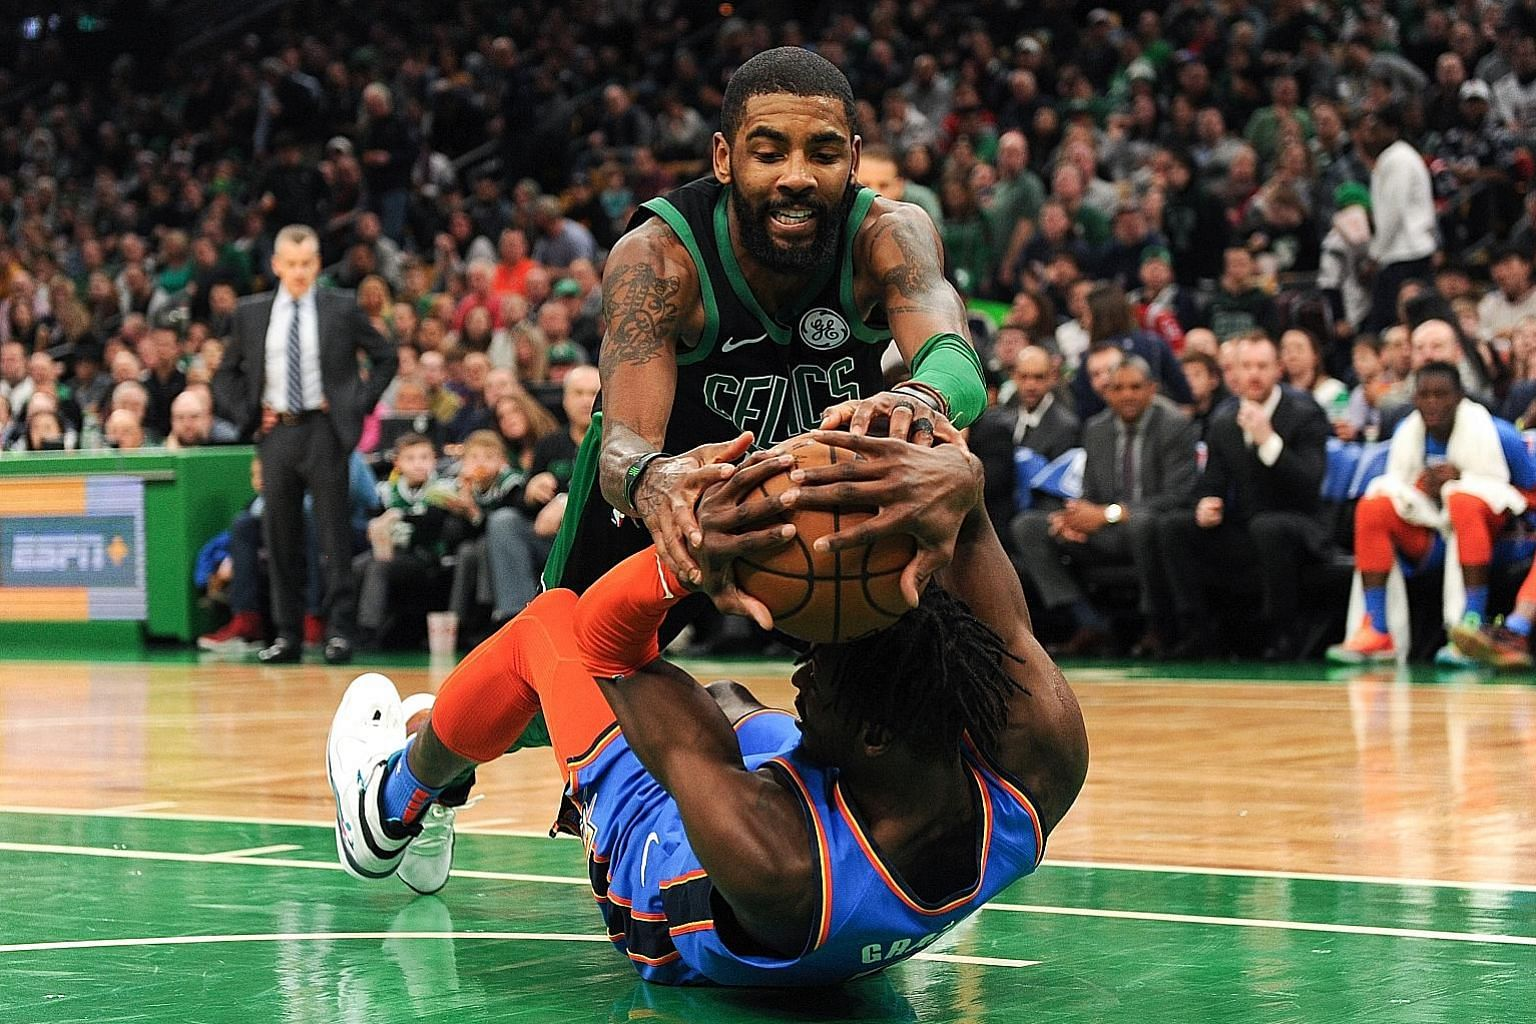 Boston Celtics guard Kyrie Irving and Oklahoma City Thunder forward Jerami Grant tussling for the ball during the second half of their NBA game at TD Garden on Sunday. Irving hit 30 points and had 11 assists in his team's 134-129 win.